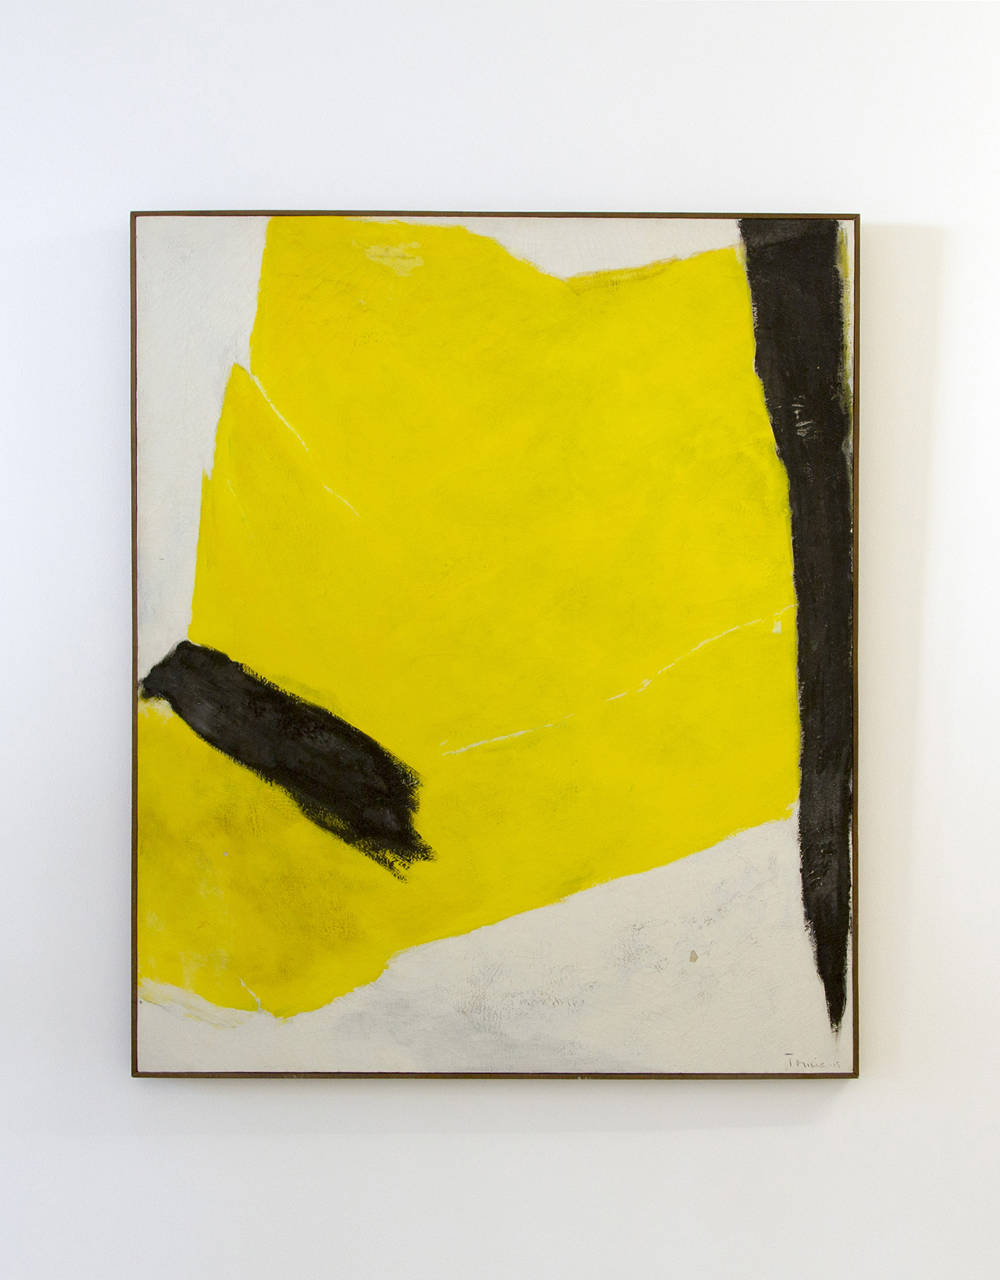 Tomie Ohtake, Untitled, 1965. Oil on canvas 47.2 x 39.4 in/120 x 100 cm. Courtesy of the artist and Galeria Nara Roesler